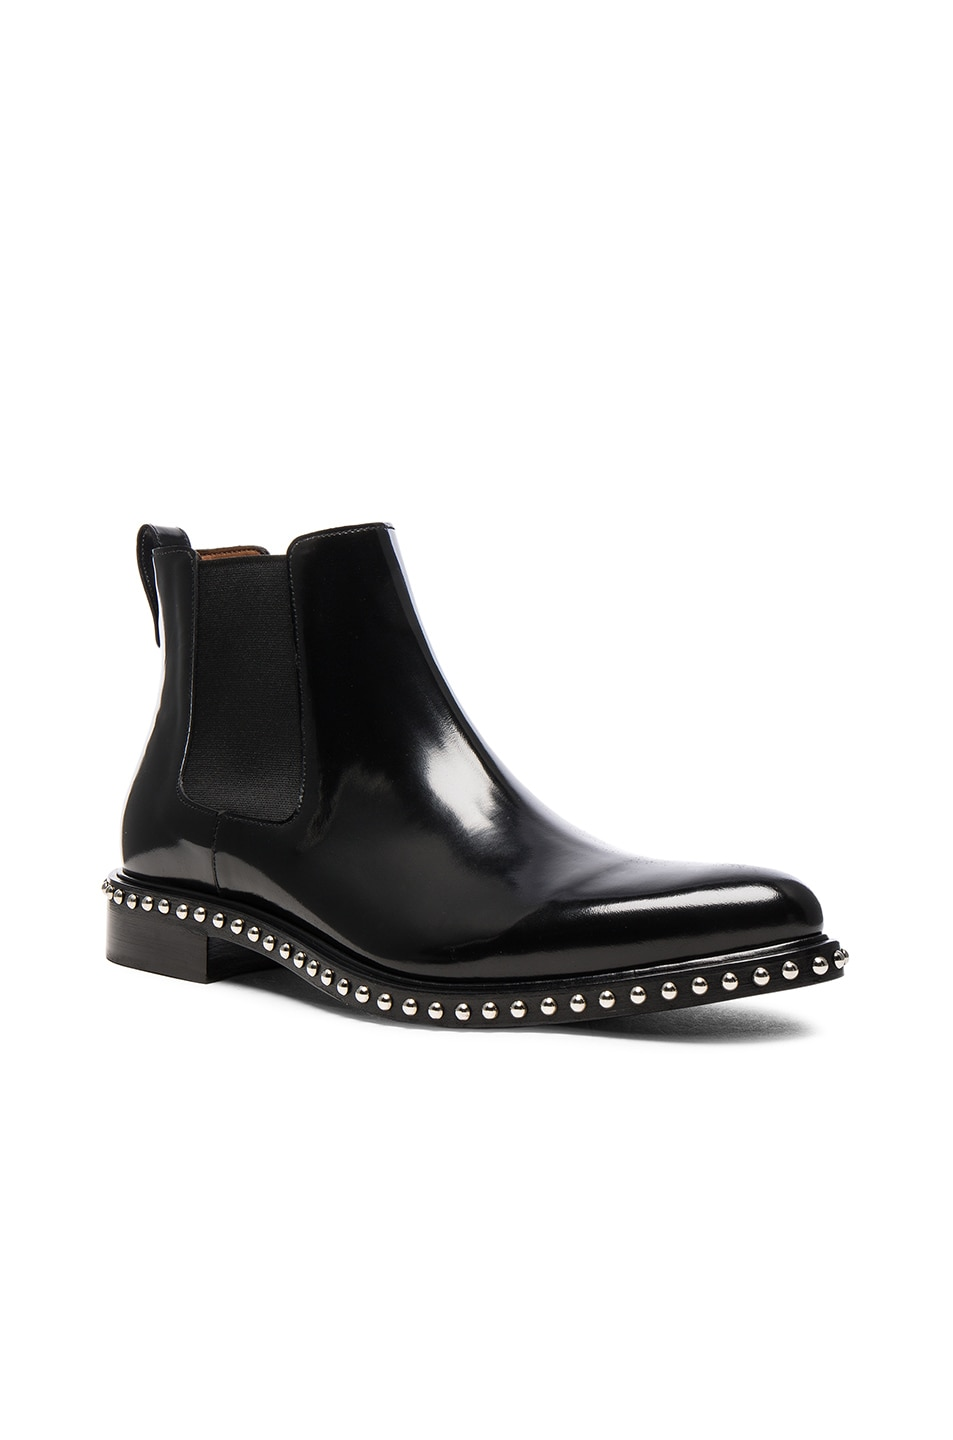 Image 1 of Givenchy Iconic Stud Ankle Boots in Black f3812342fe